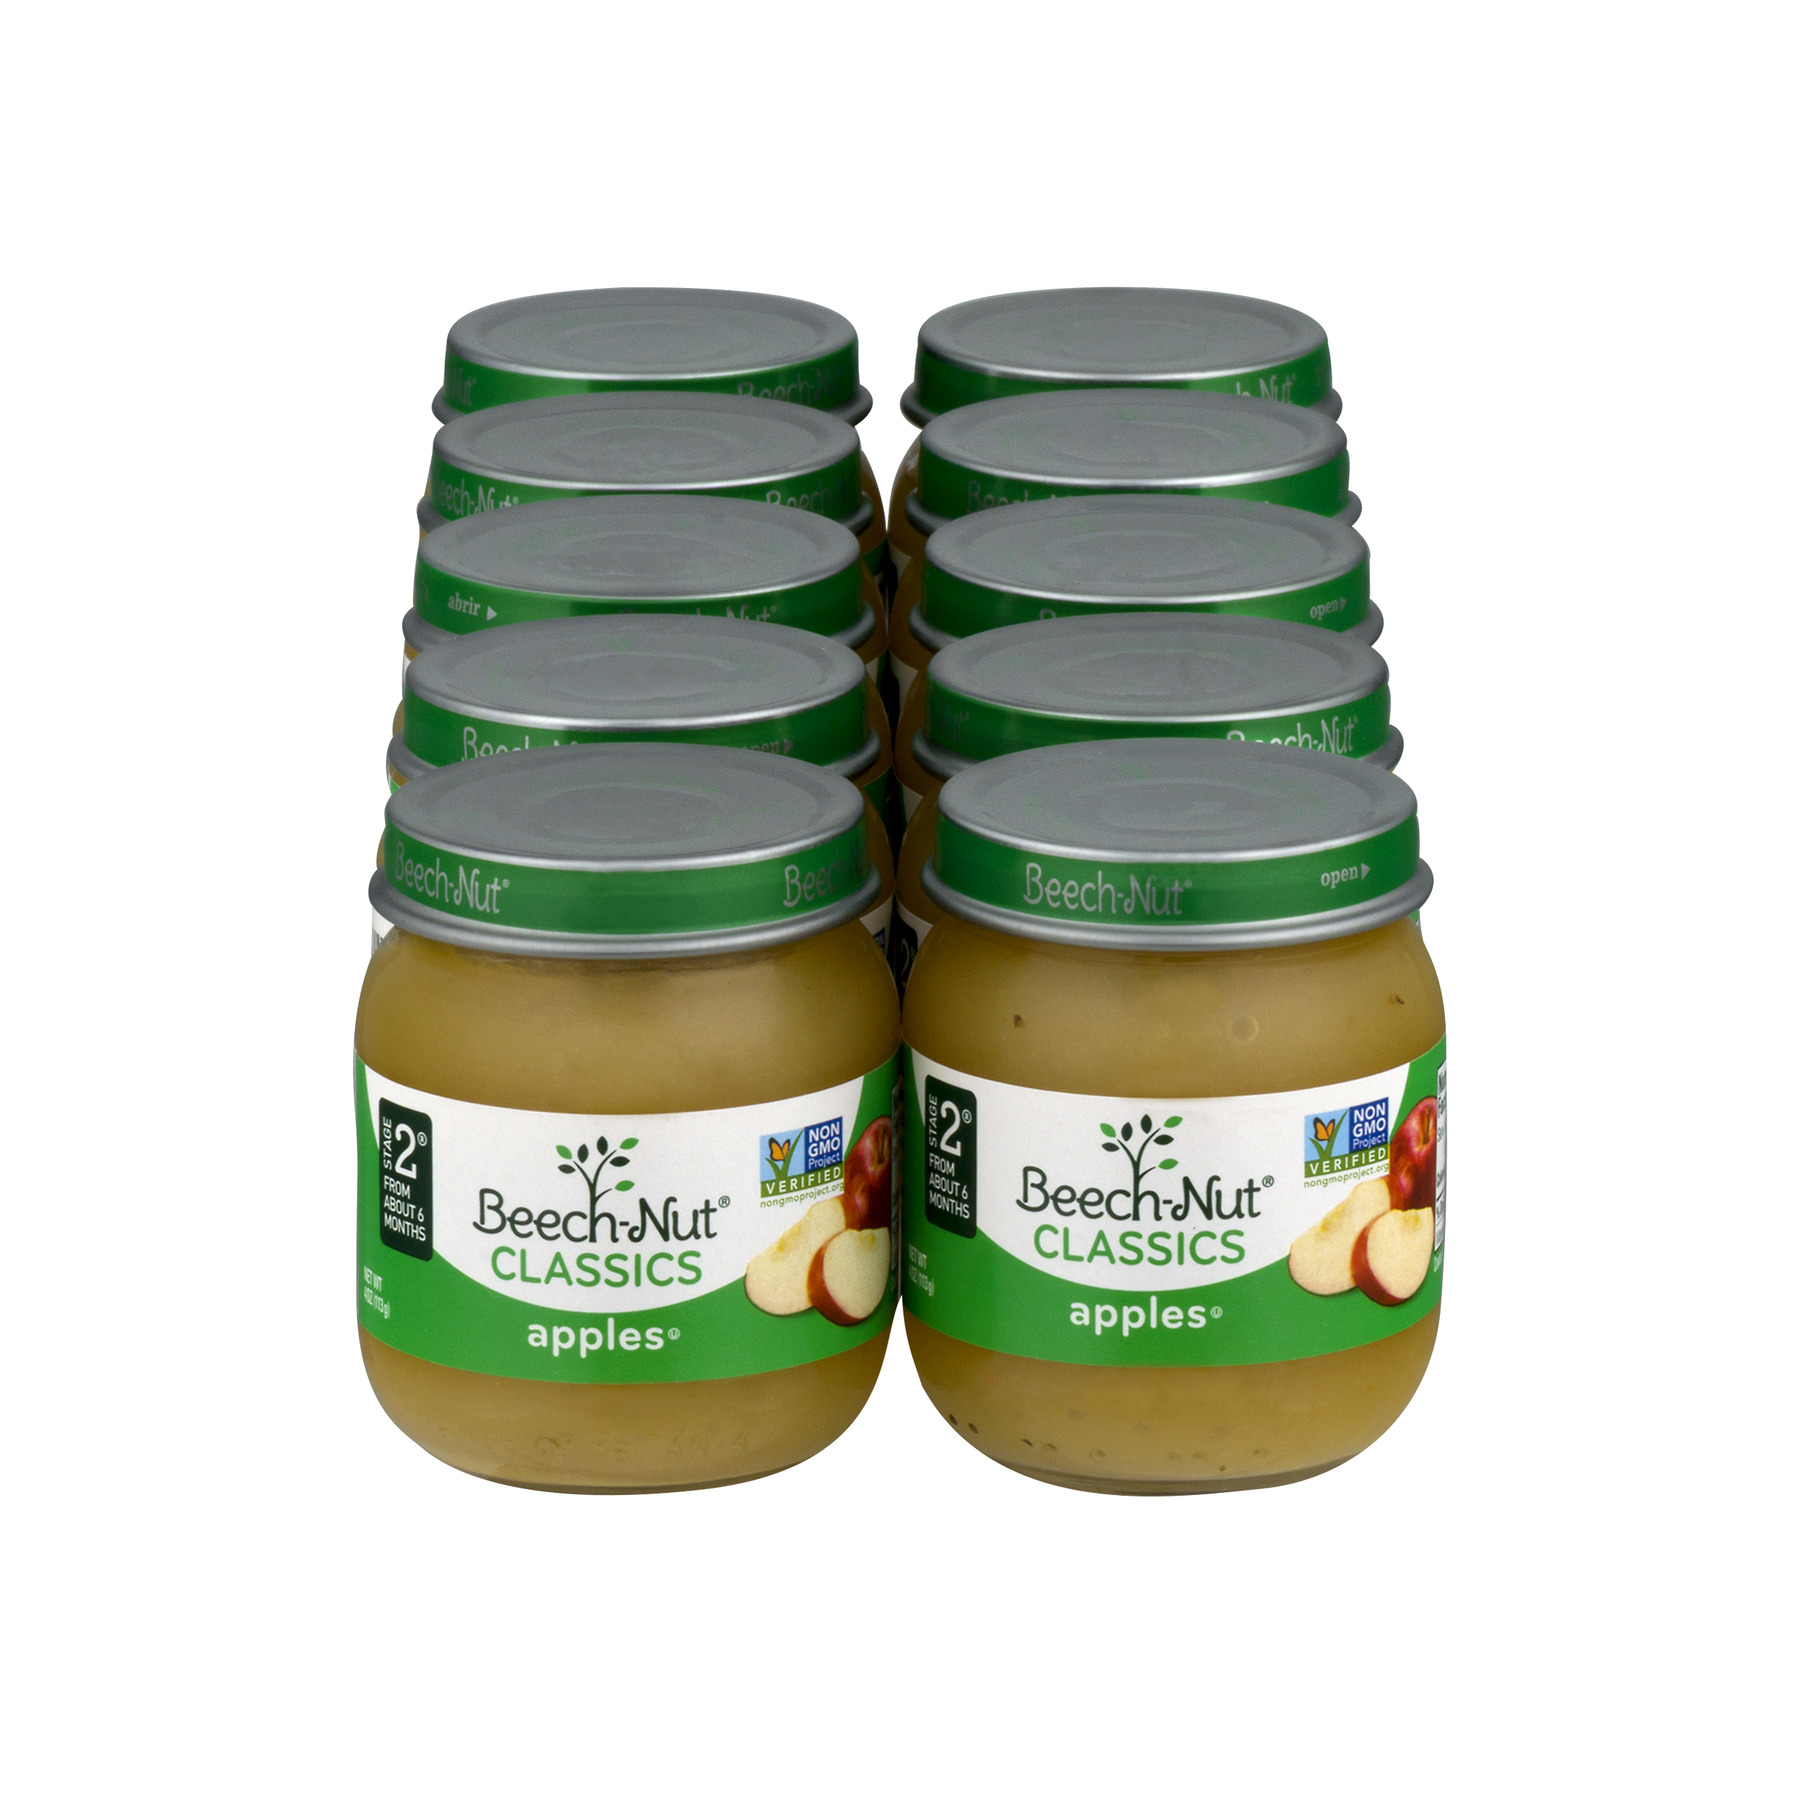 Beech-Nut Classics Apples Baby Food Stage 2 from About 6 Months, 4 oz